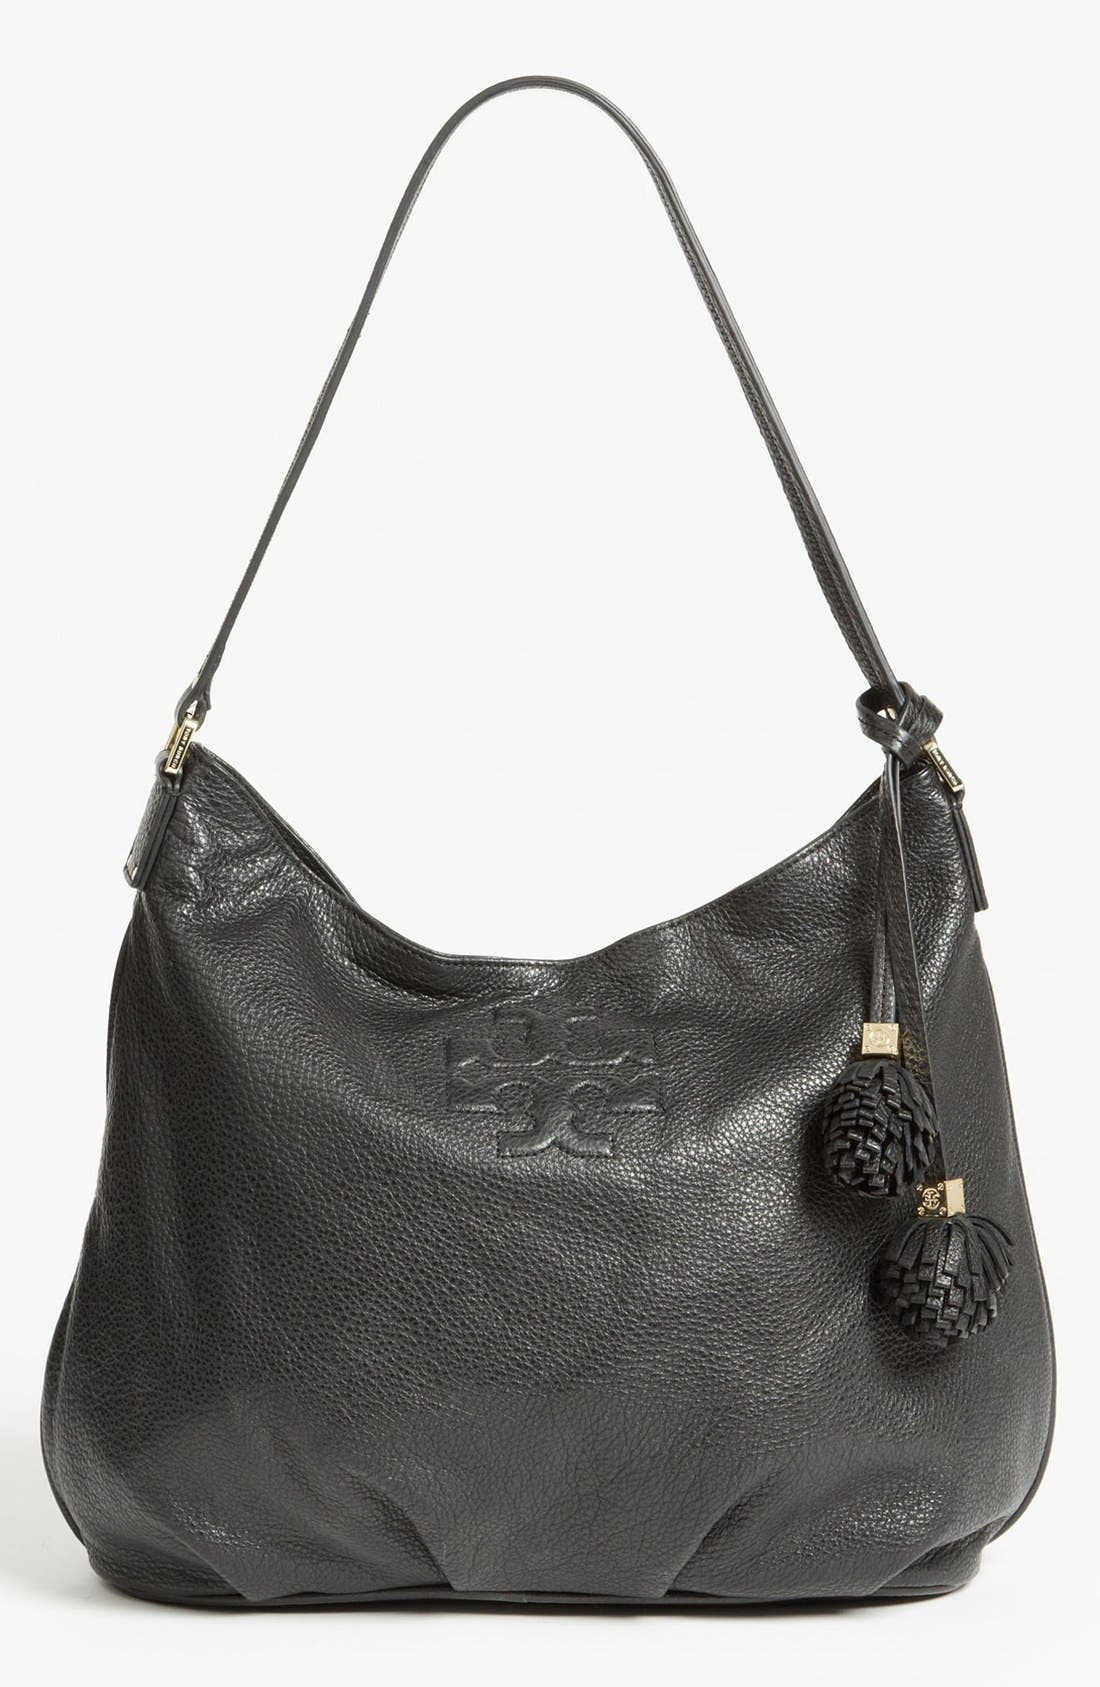 Alternate Image 1 Selected - Tory Burch 'Thea' Leather Hobo